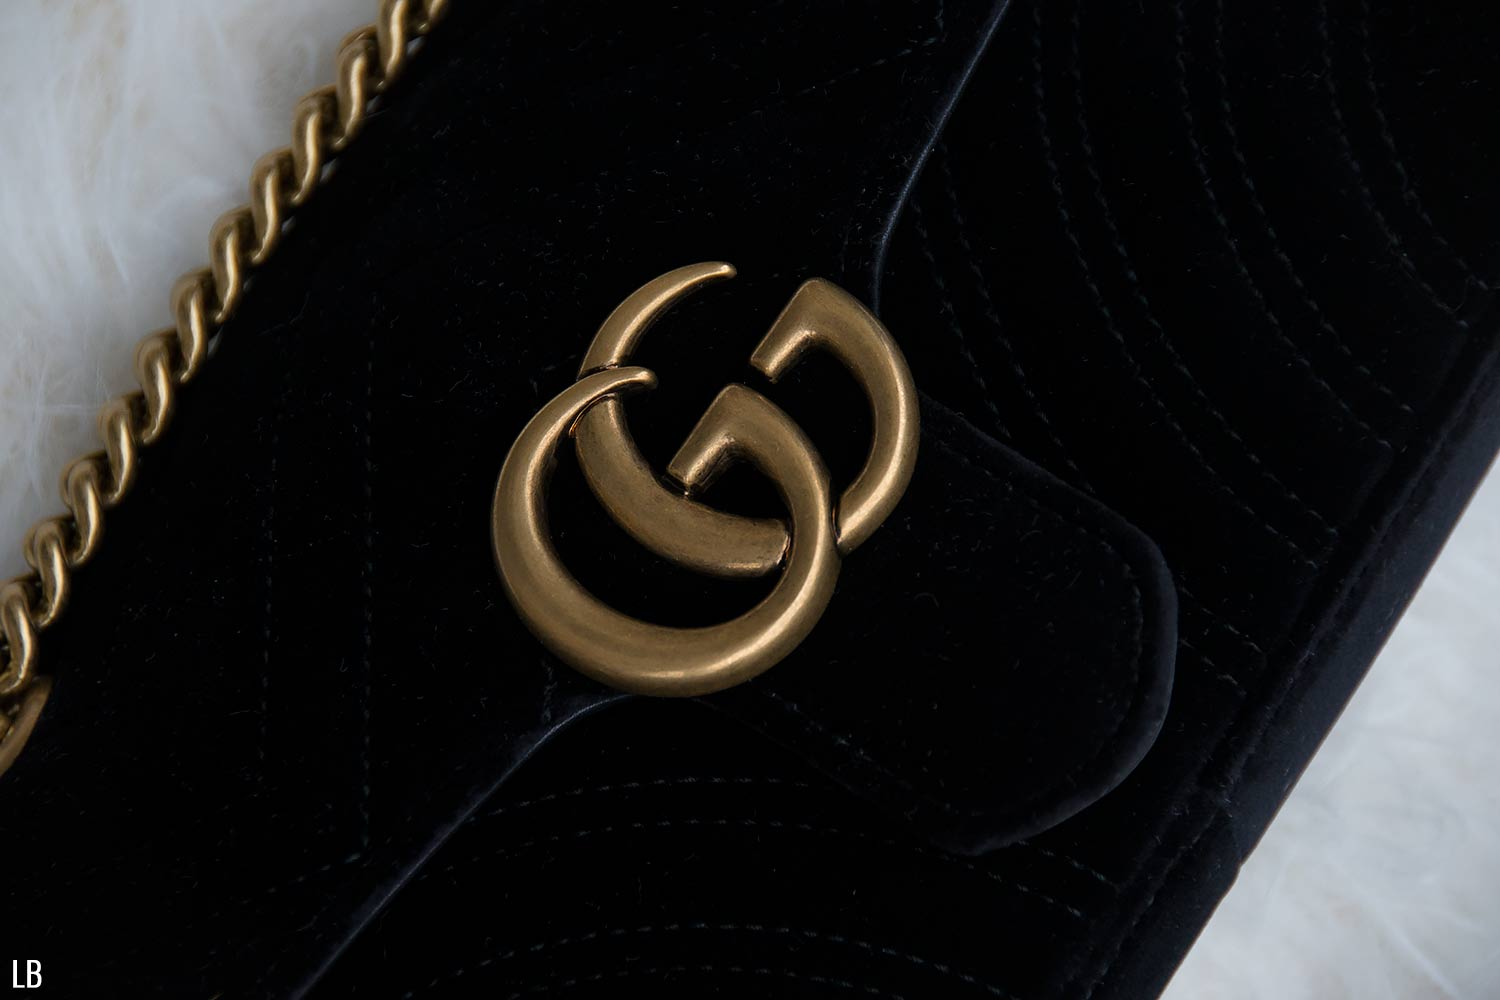 fb7d95fee4f Gucci GG Marmont Velvet Mini Bag Review